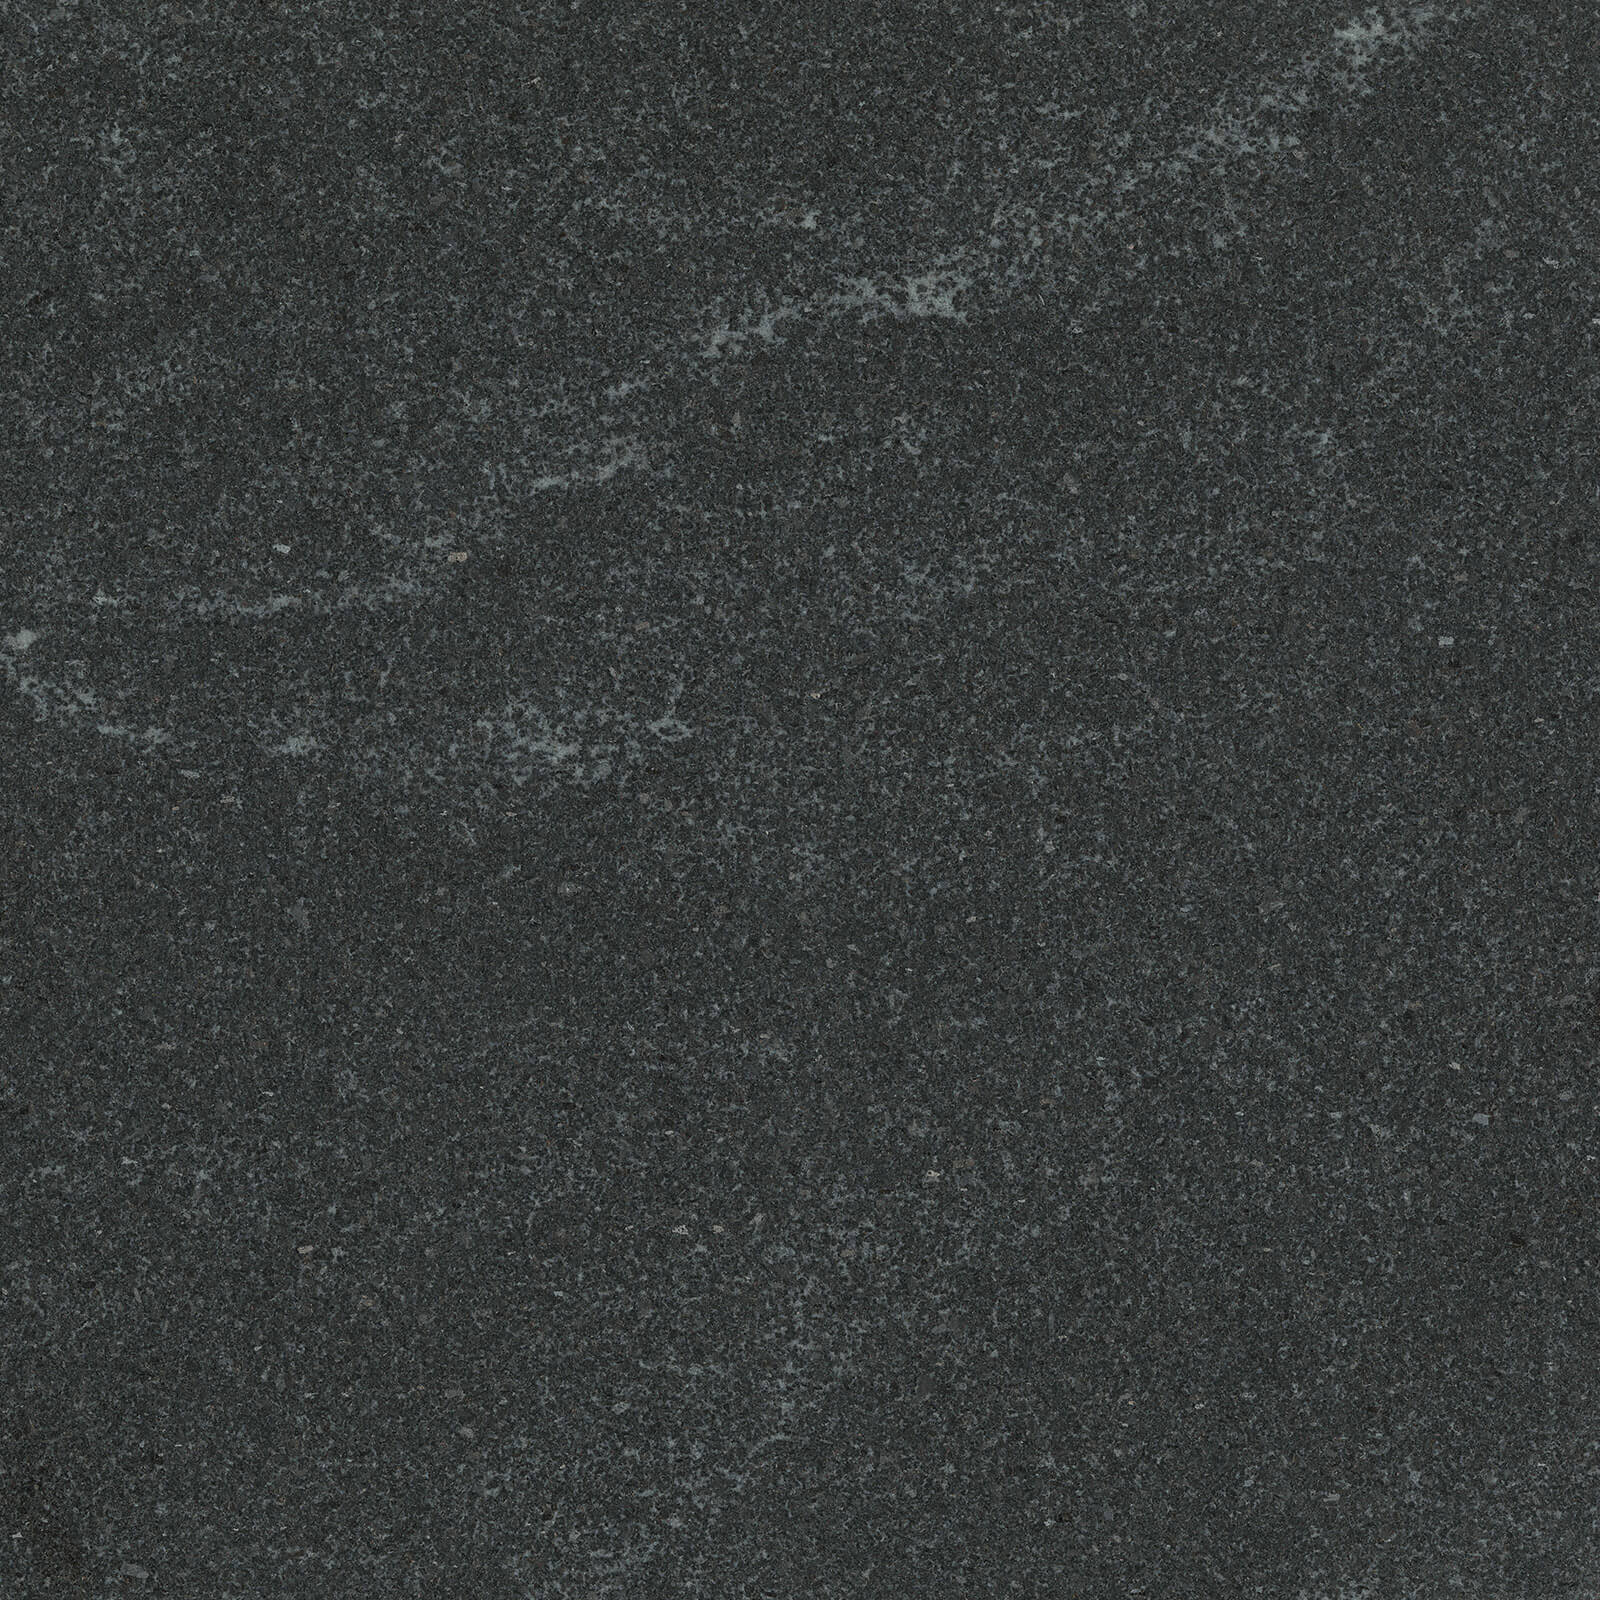 Black Granite Texture Seamless